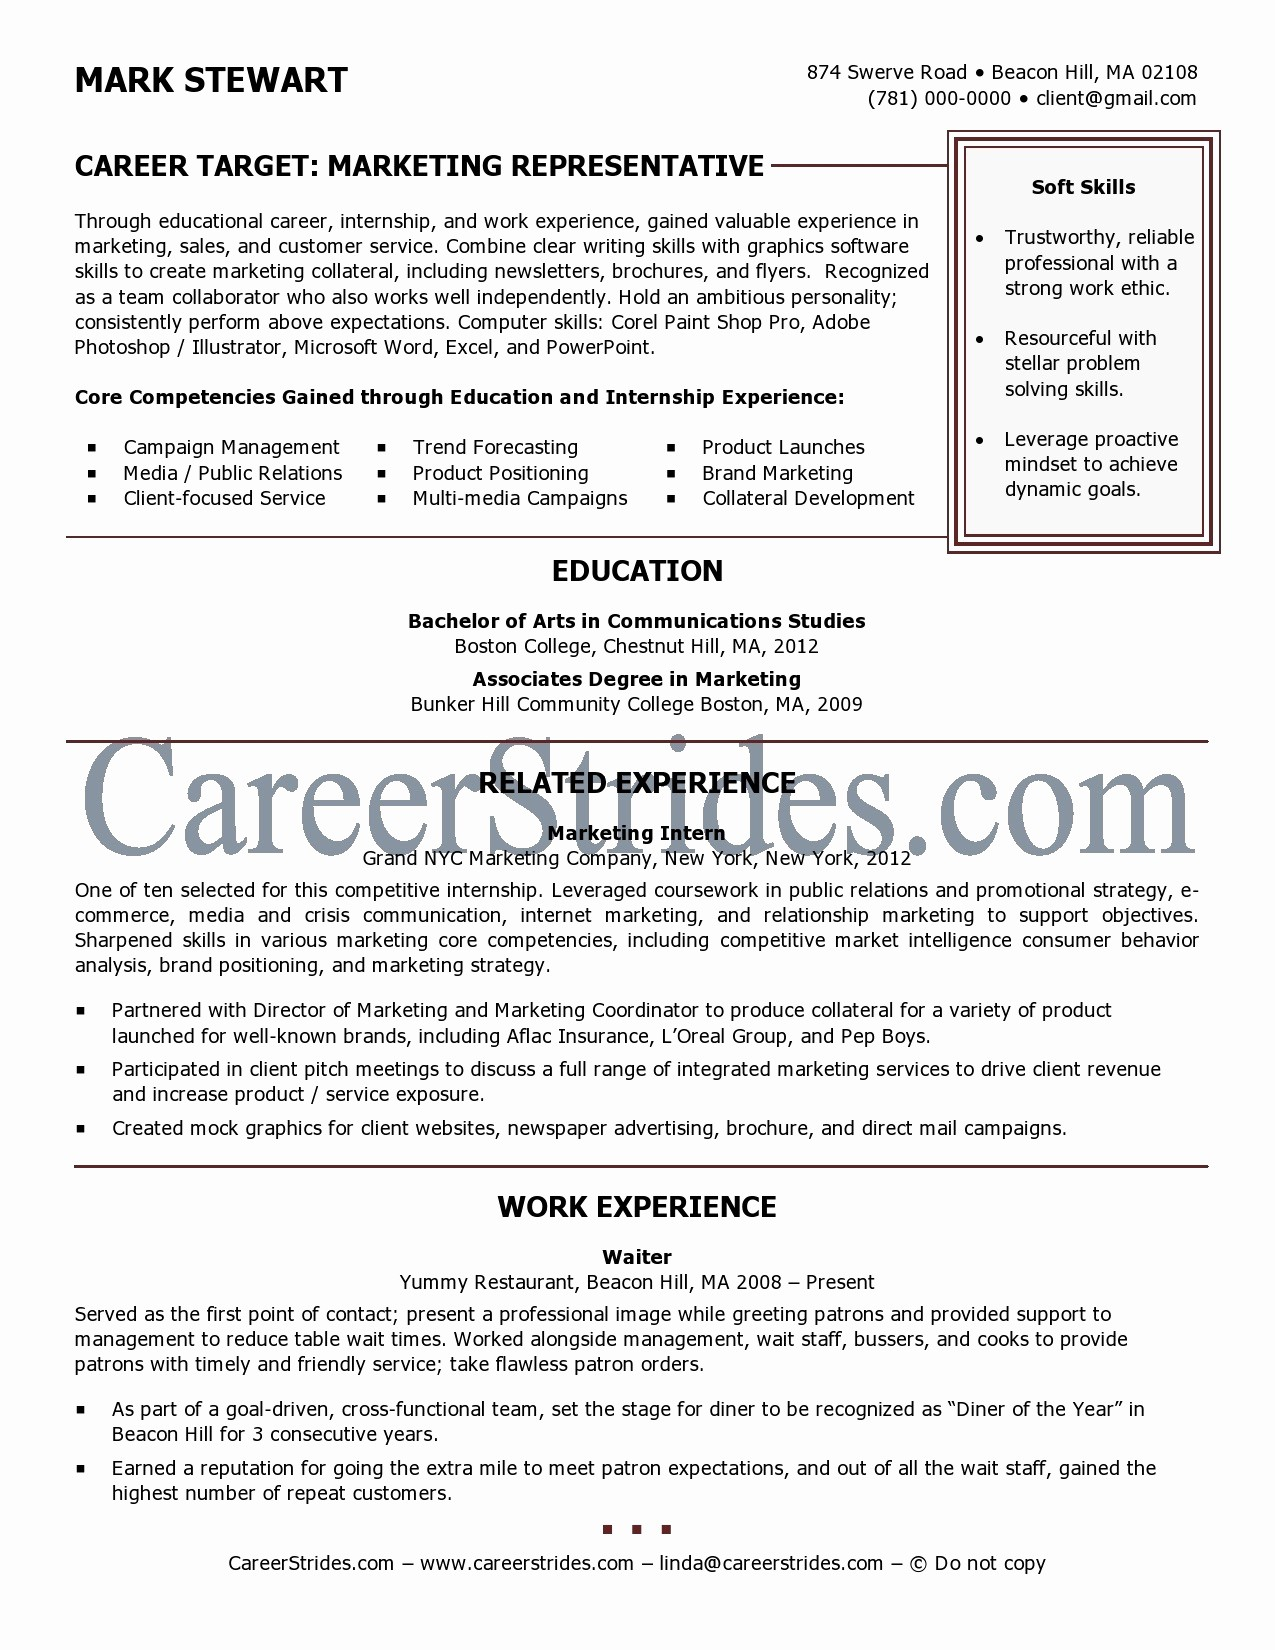 Resume for Recent College Grad Best Of Review Resume Samples In A Wide Range Of Careers